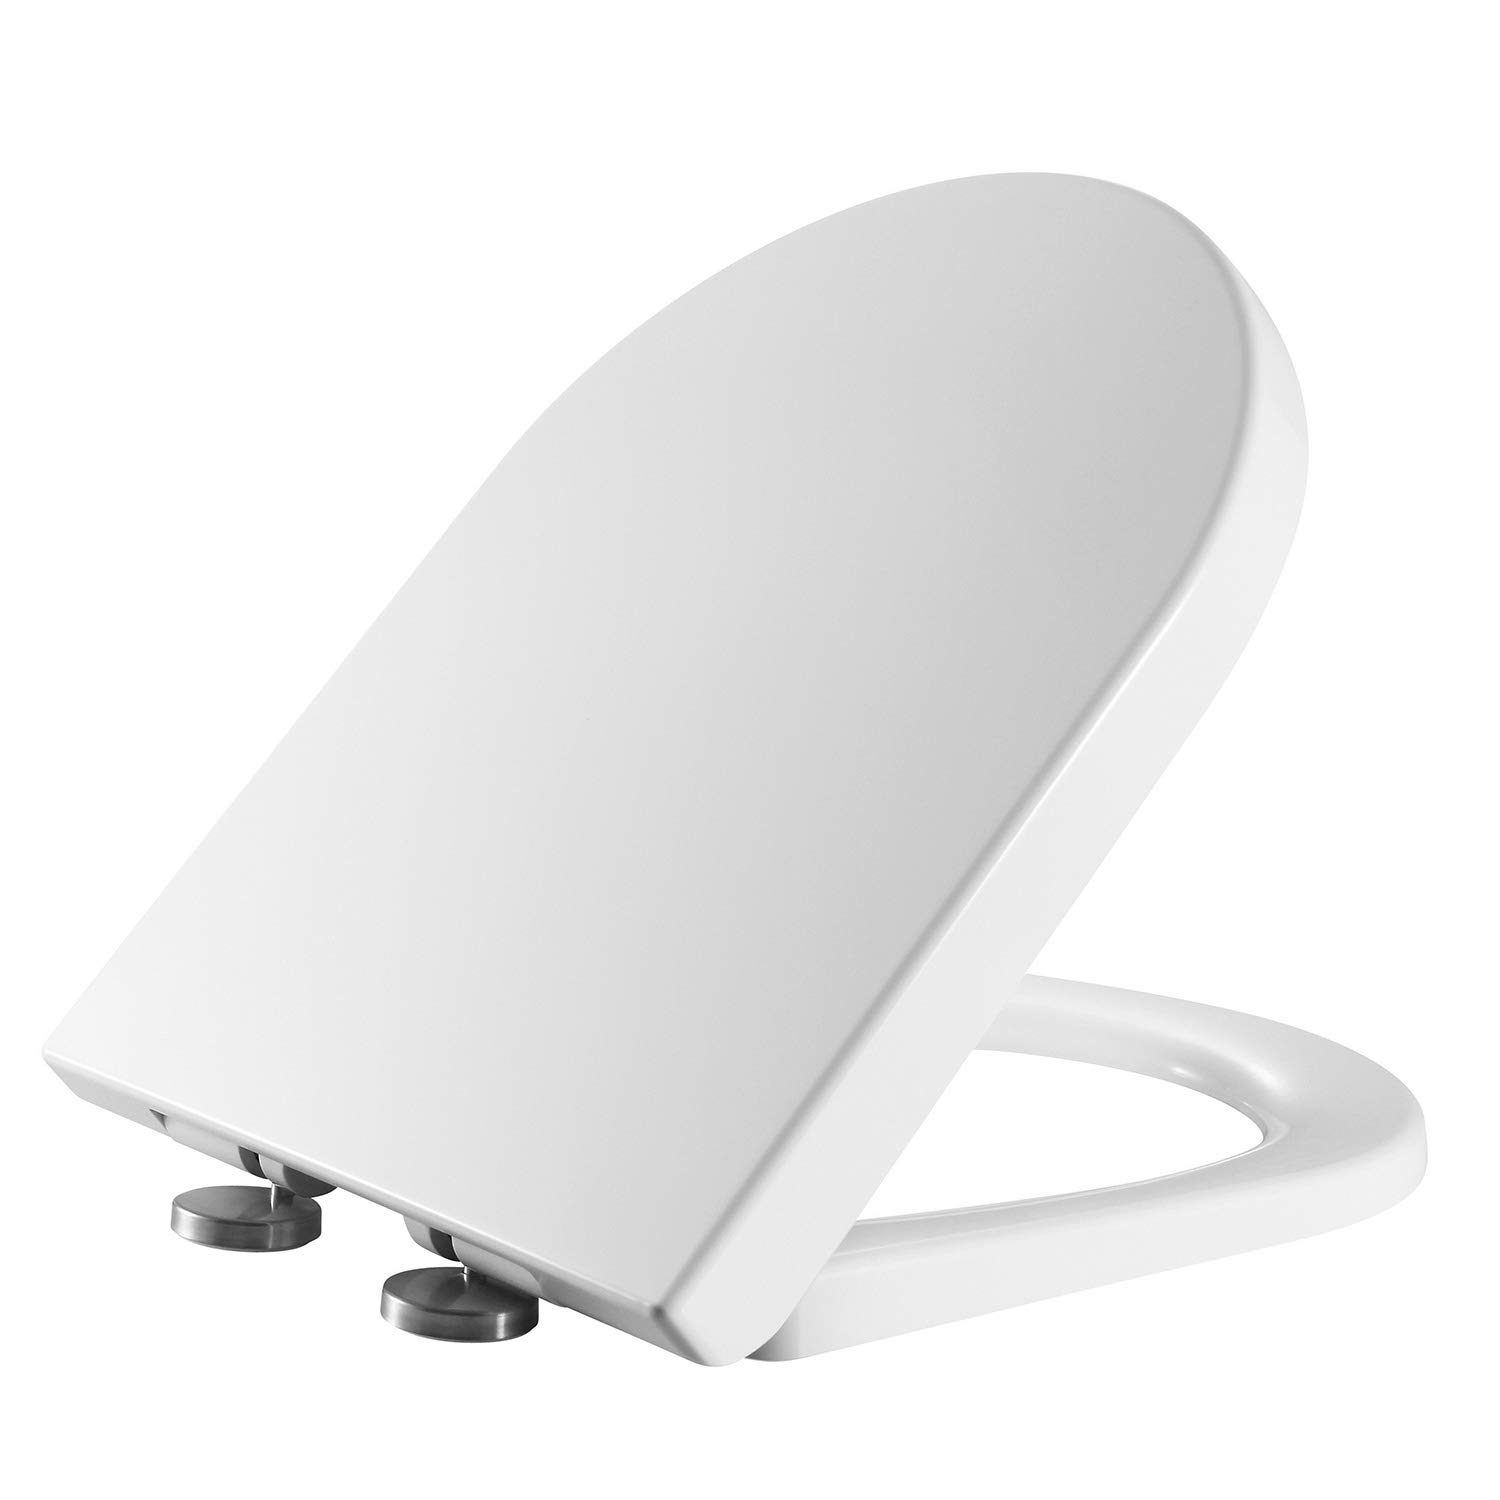 UF Toilet Seat for HOROW HWMT-8733 Compact Toilet by HOROW